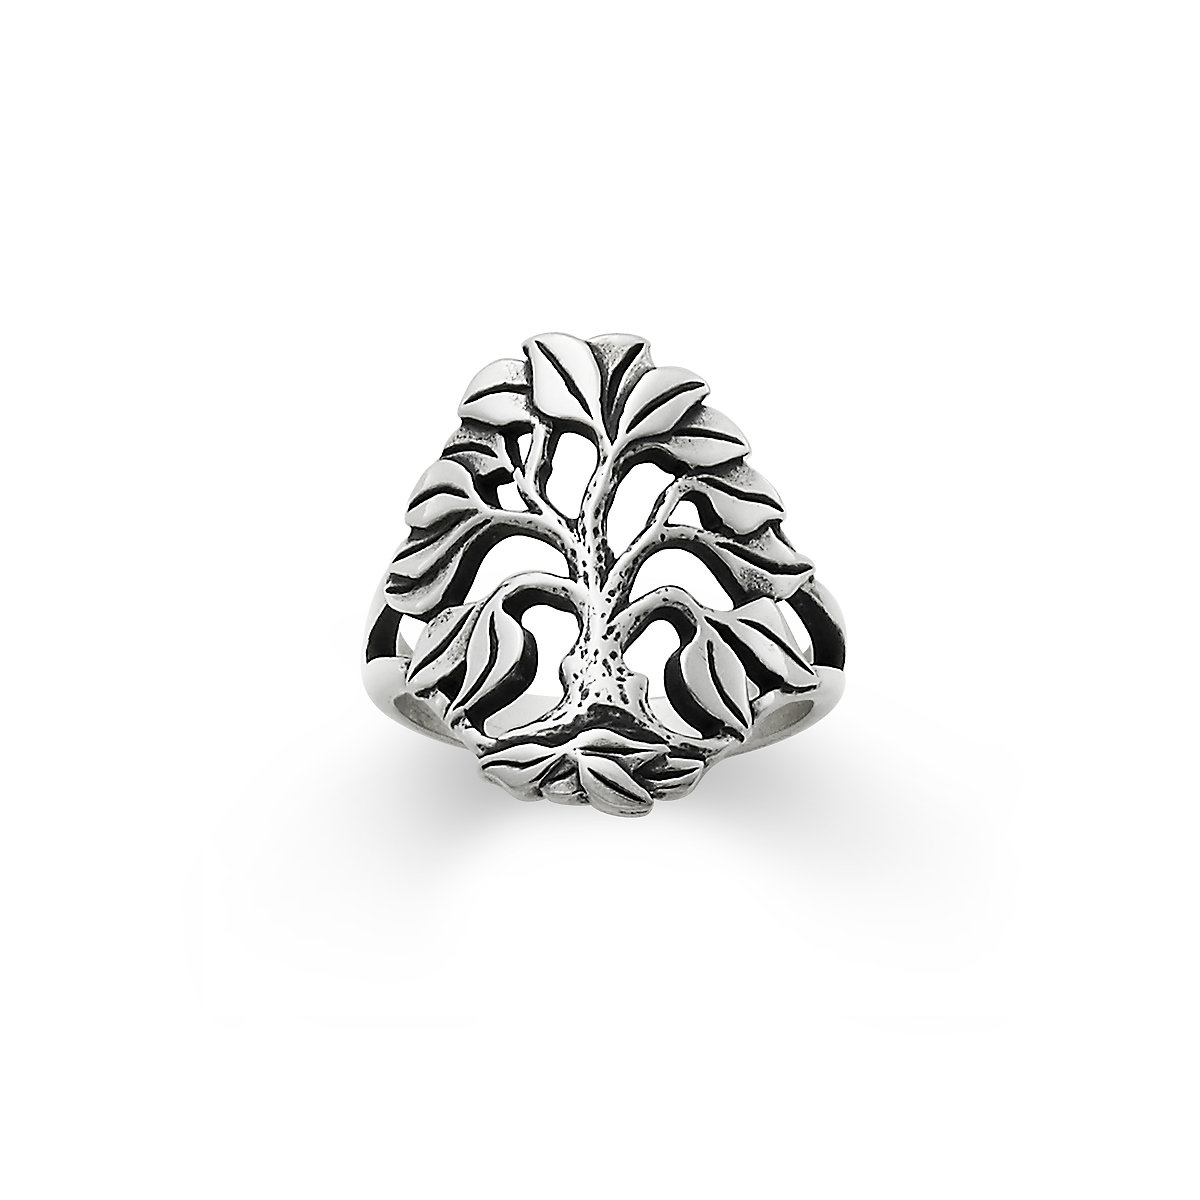 To acquire Ring tree jewelry picture trends